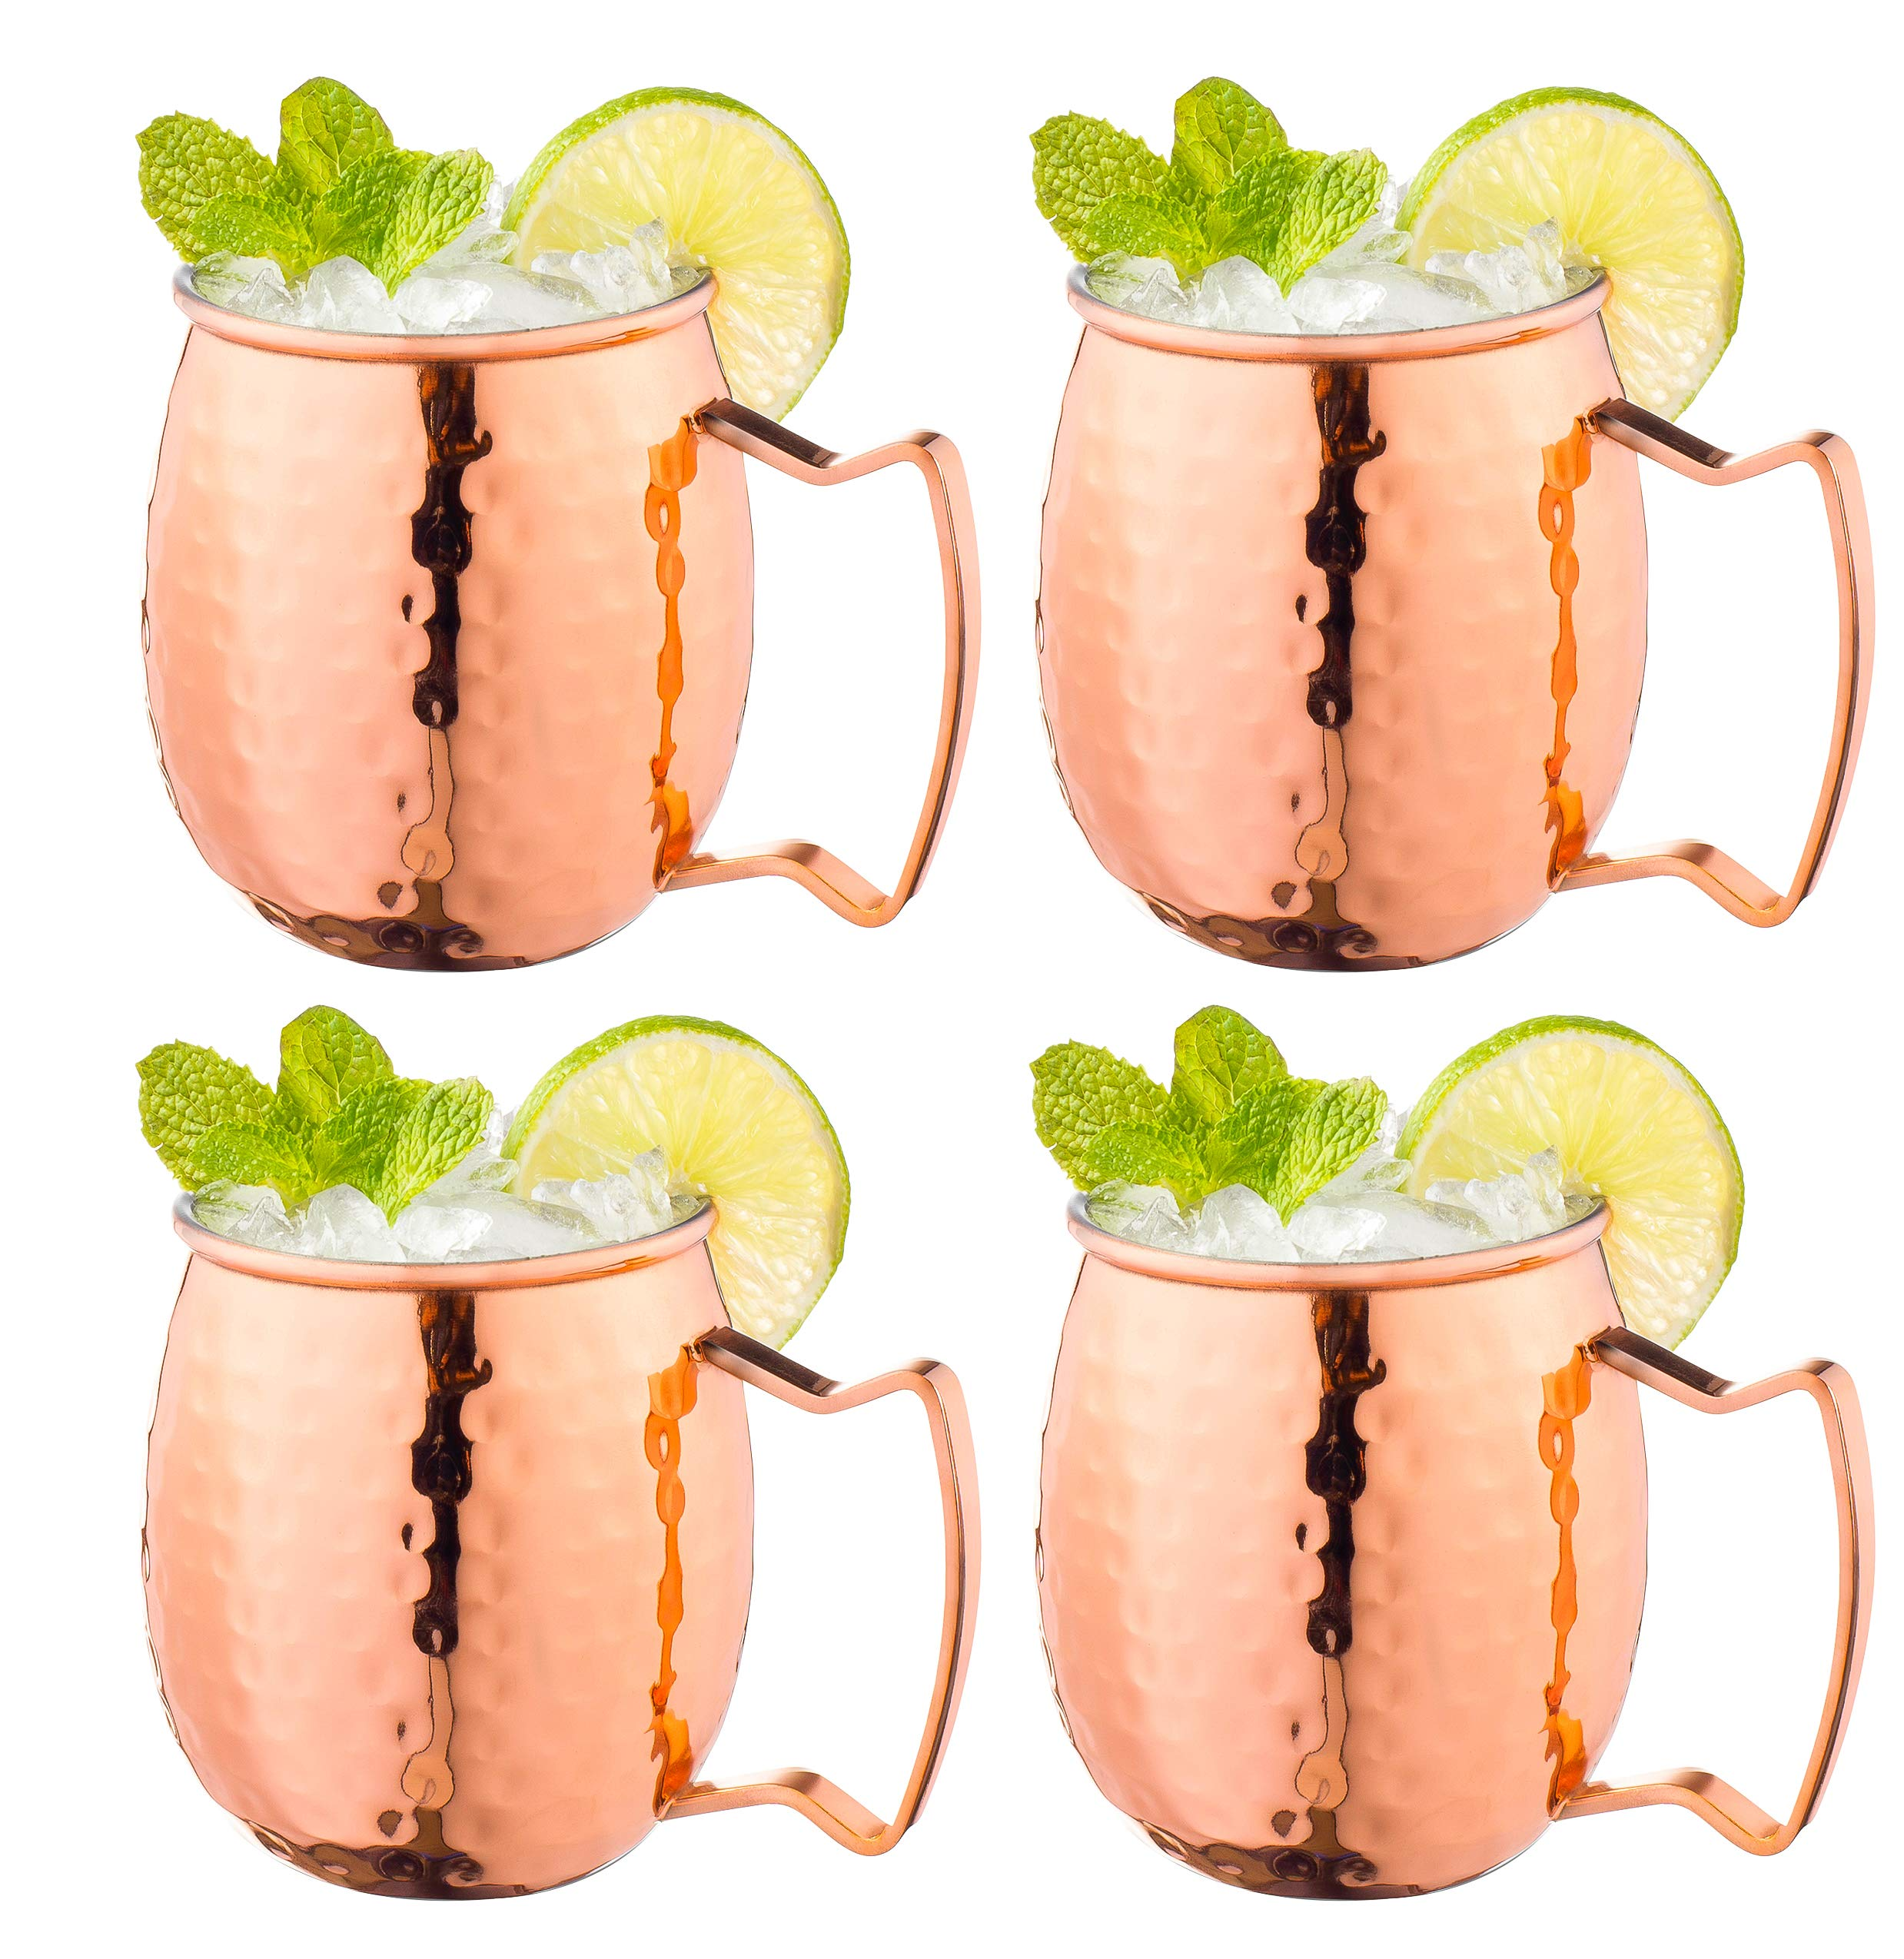 Moscow Mule Copper Mugs with Handles (4-Pack) Classic Drinking Cup Set Home, Kitchen, Bar Drinkware Helps Keep Drinks Colder, Longer Food-Grade Safe Lining by Fisher Home Products